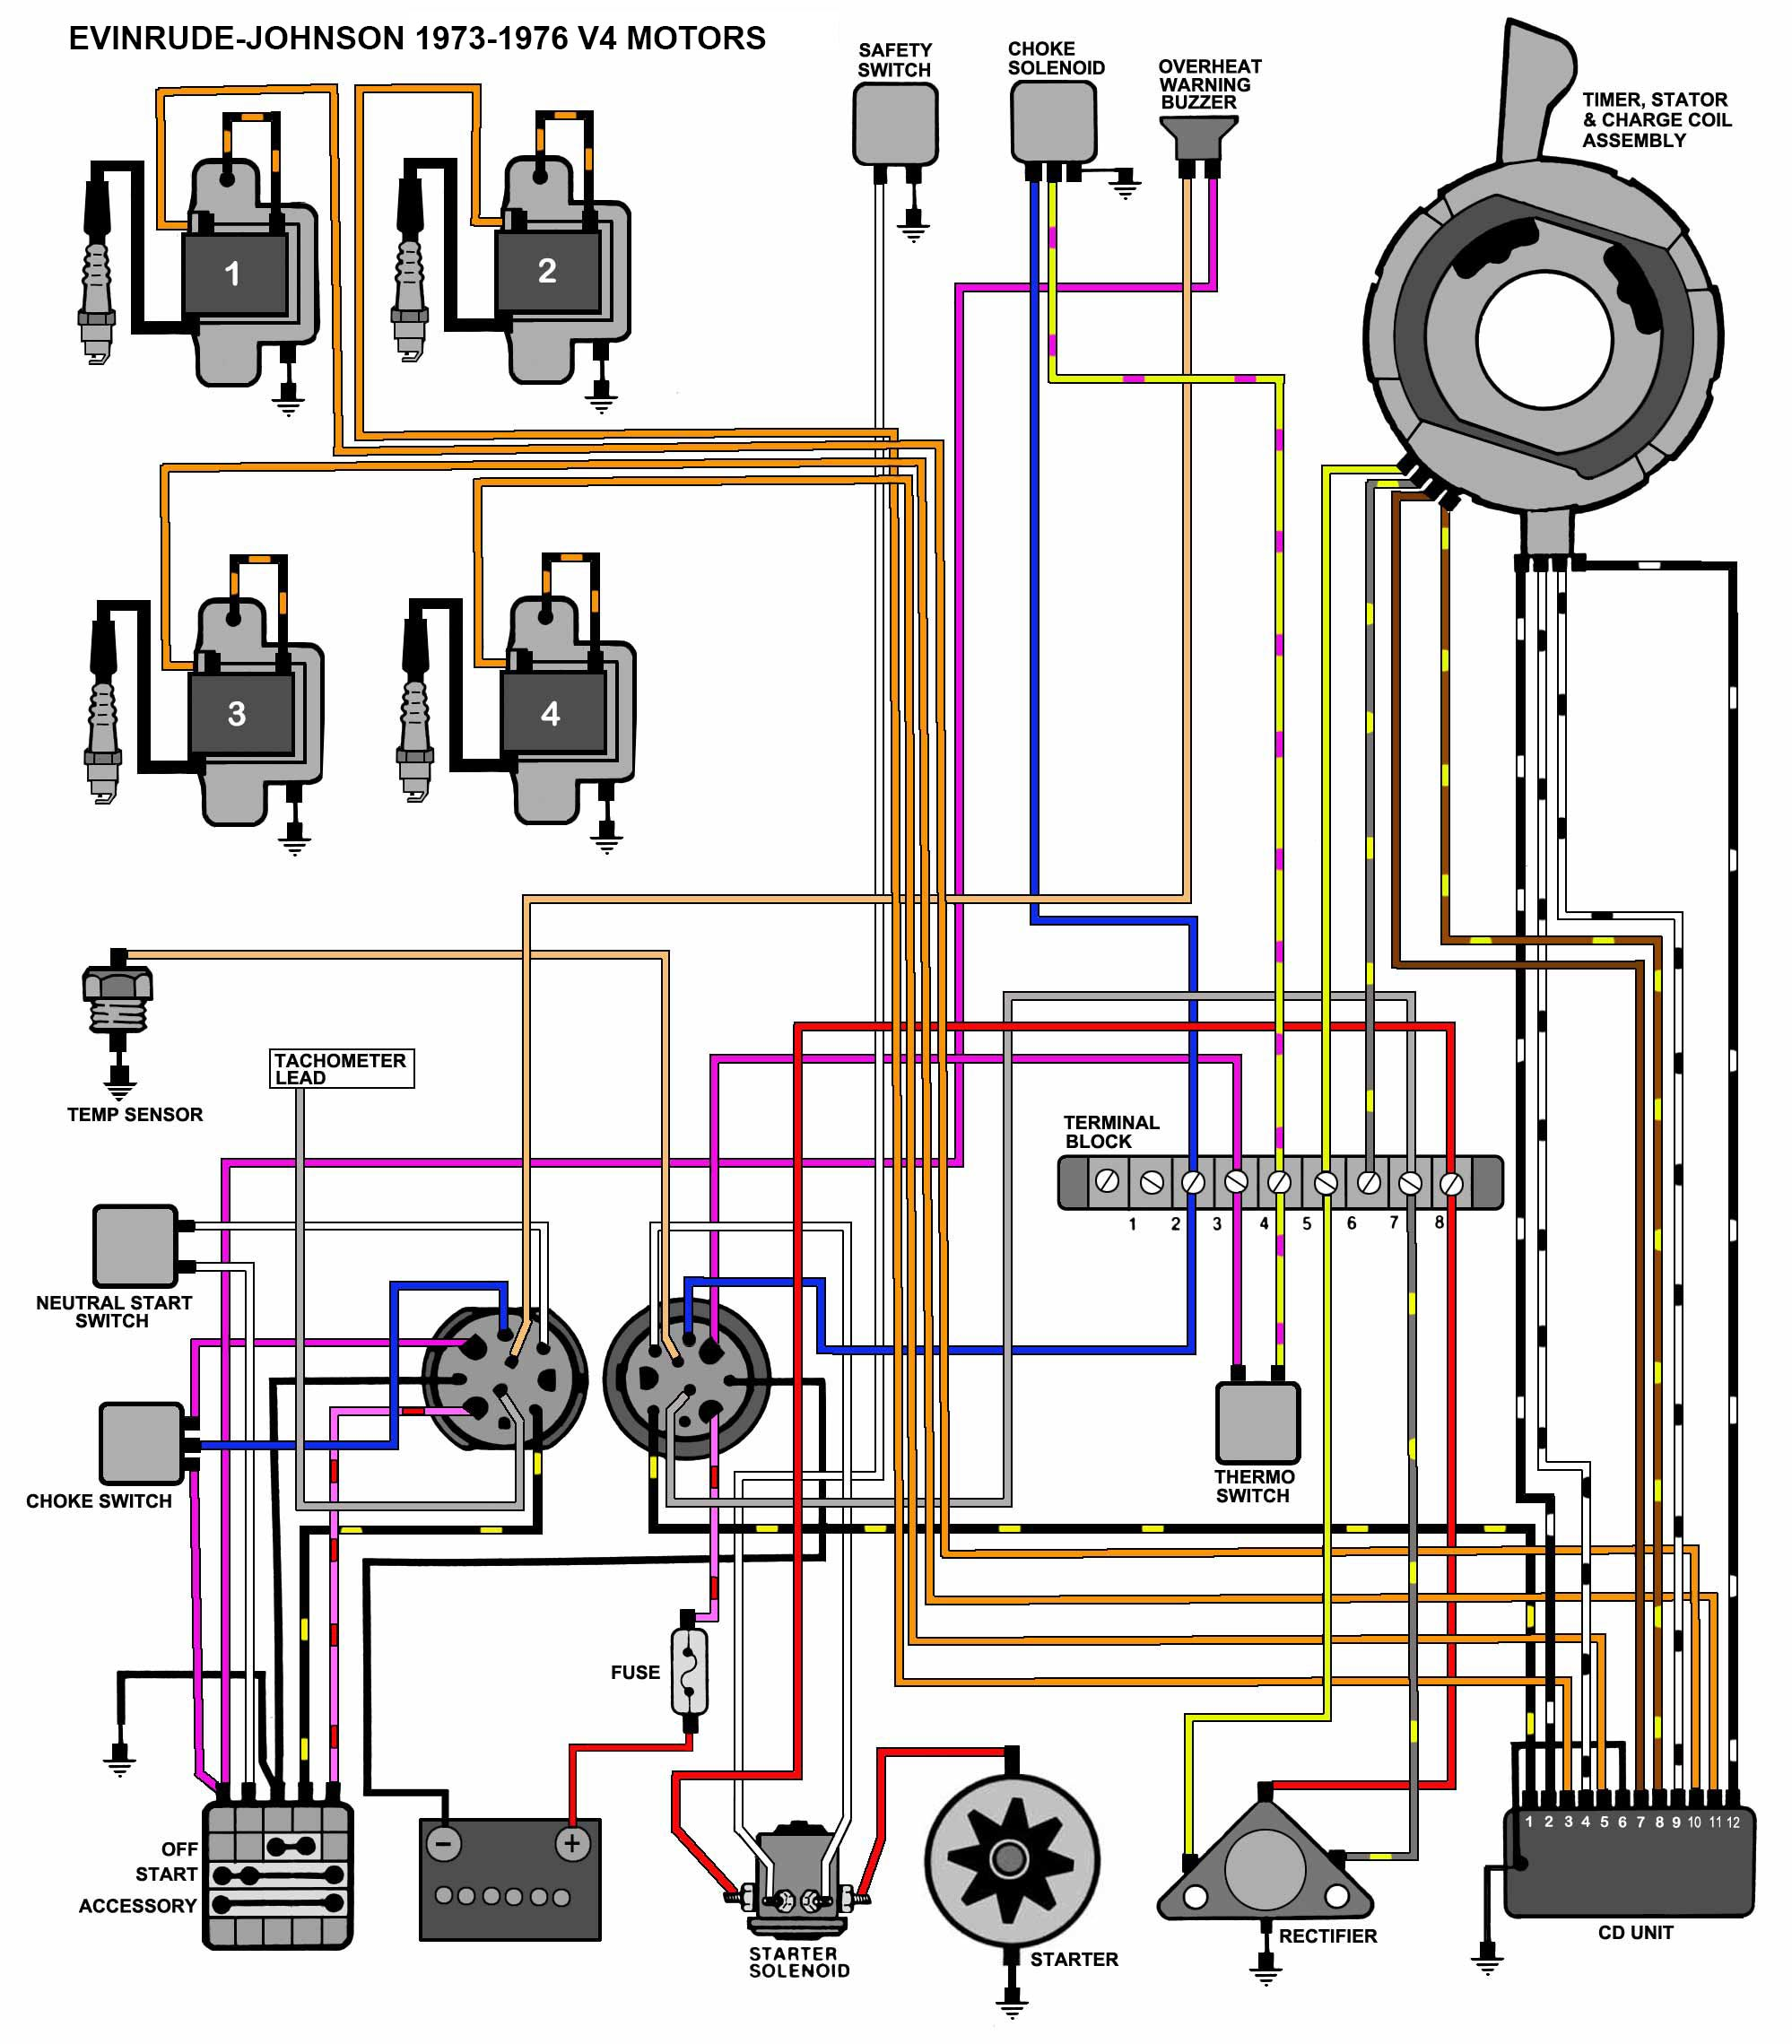 EVINRUDE JOHNSON Outboard Wiring Diagrams -- MASTERTECH ... on series and parallel circuits diagrams, electrical diagrams, hvac diagrams, sincgars radio configurations diagrams, gmc fuse box diagrams, transformer diagrams, troubleshooting diagrams, led circuit diagrams, pinout diagrams, electronic circuit diagrams, switch diagrams, battery diagrams, motor diagrams, internet of things diagrams, lighting diagrams, friendship bracelet diagrams, smart car diagrams, engine diagrams, honda motorcycle repair diagrams,